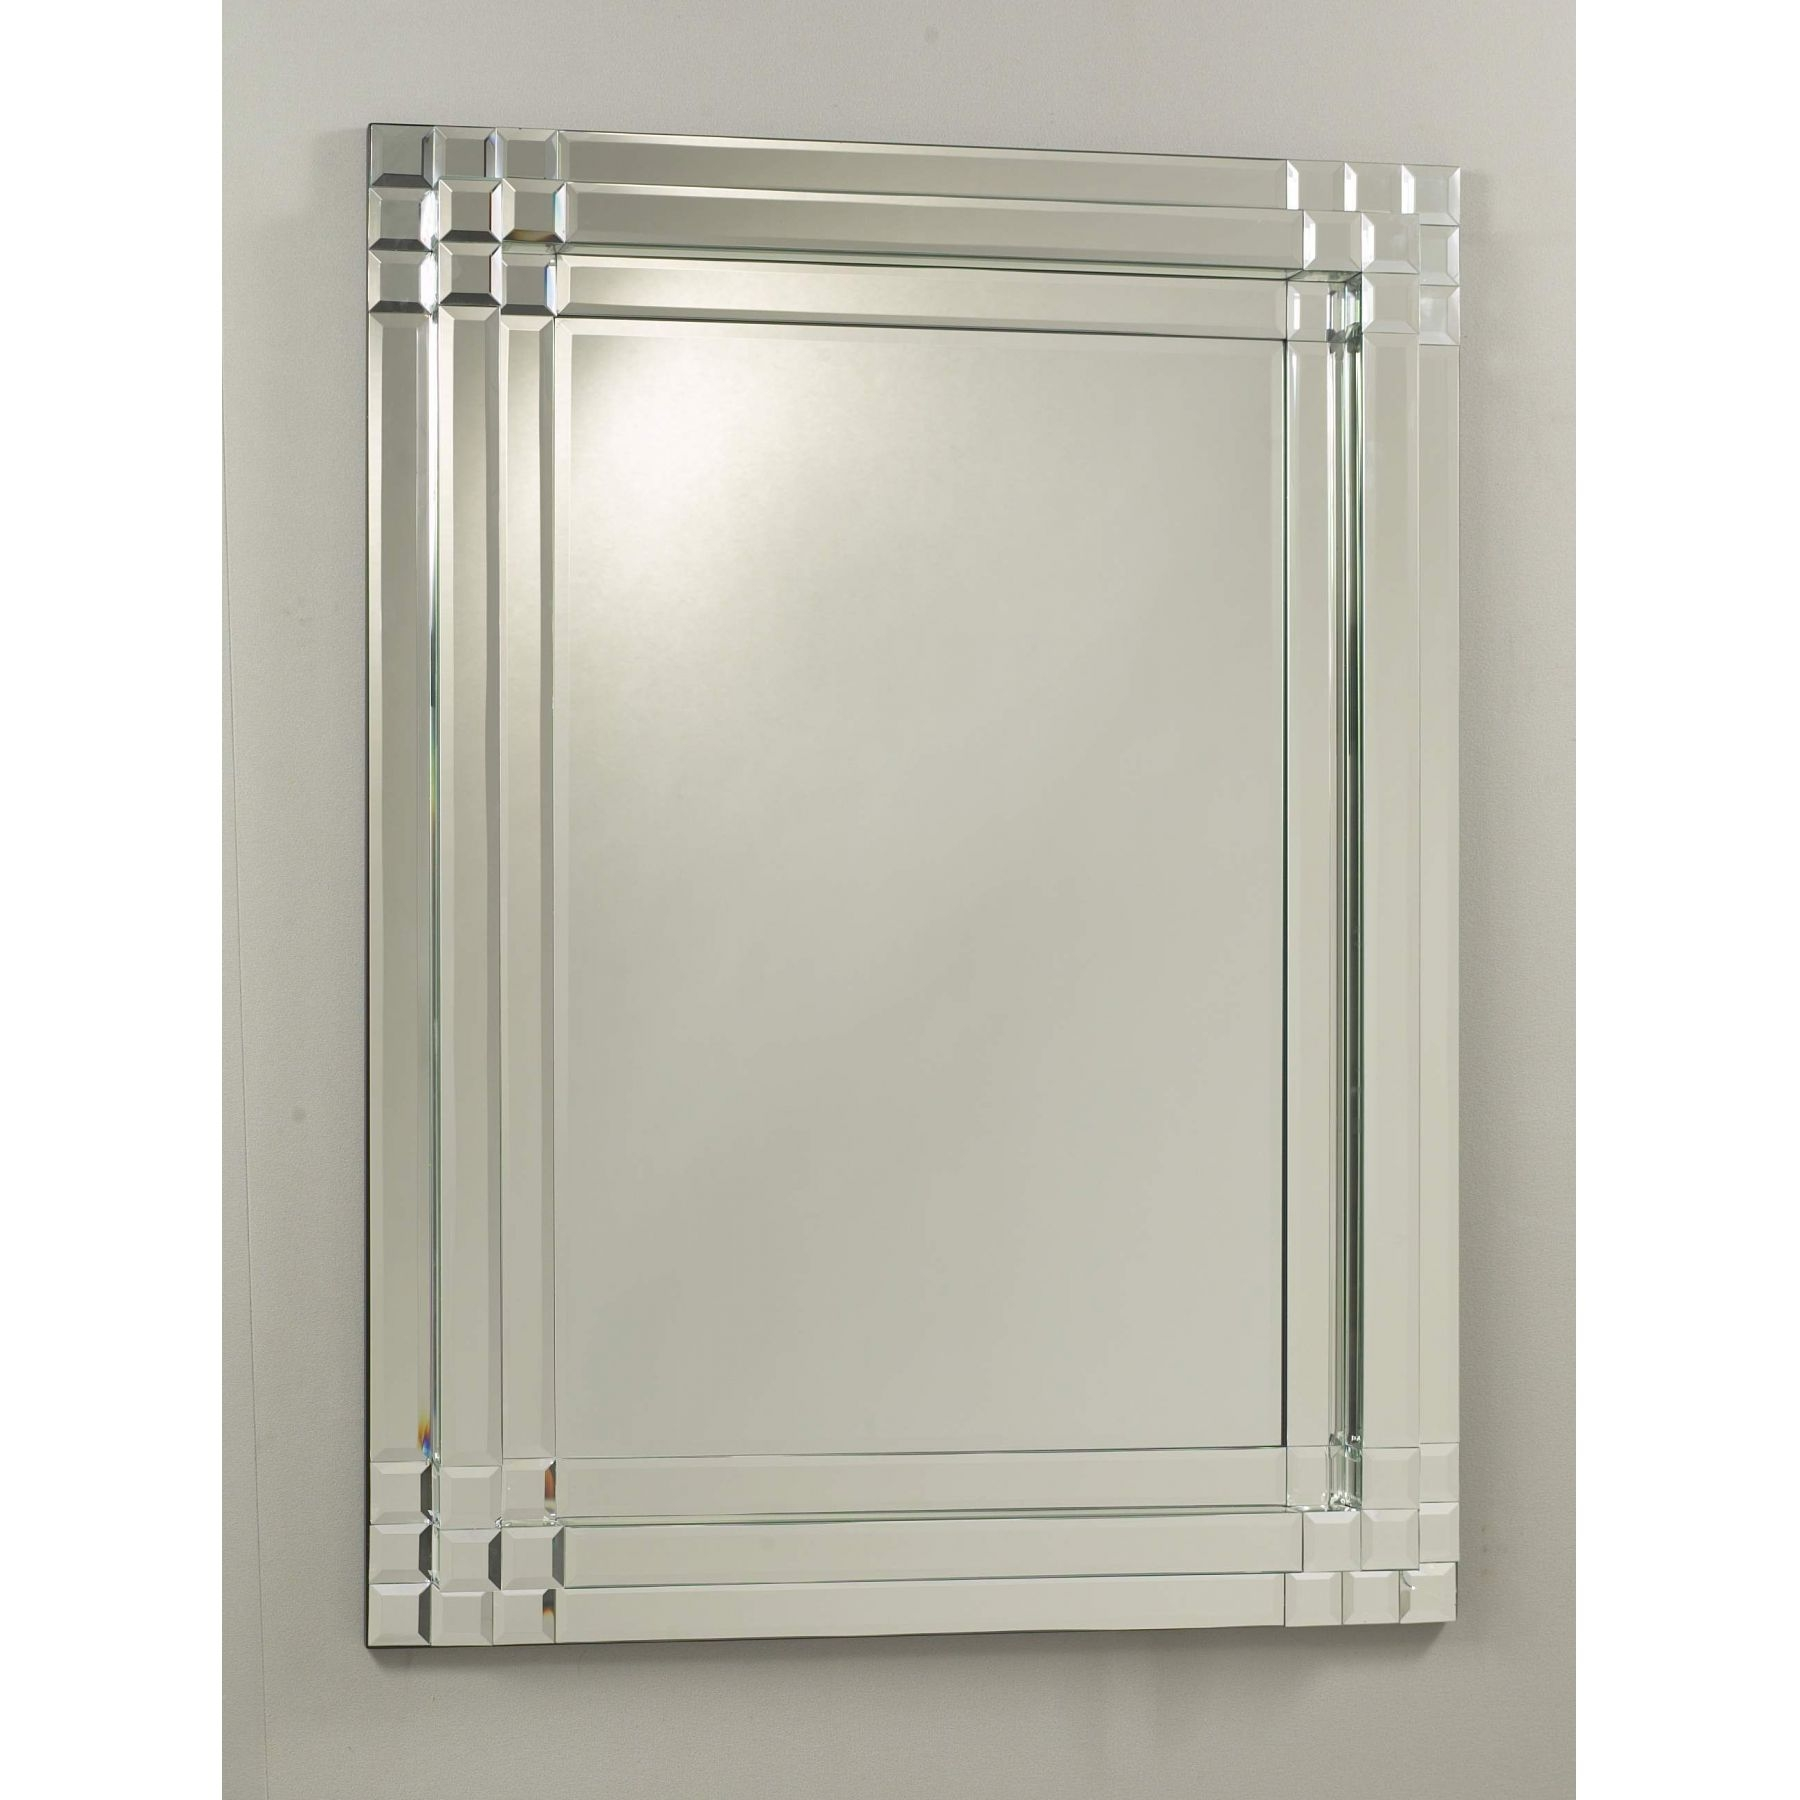 Silver Box Bevel Mirror Miscellaneous From Homesdirect 365 Uk Pertaining To Bevel Mirror (Image 14 of 15)